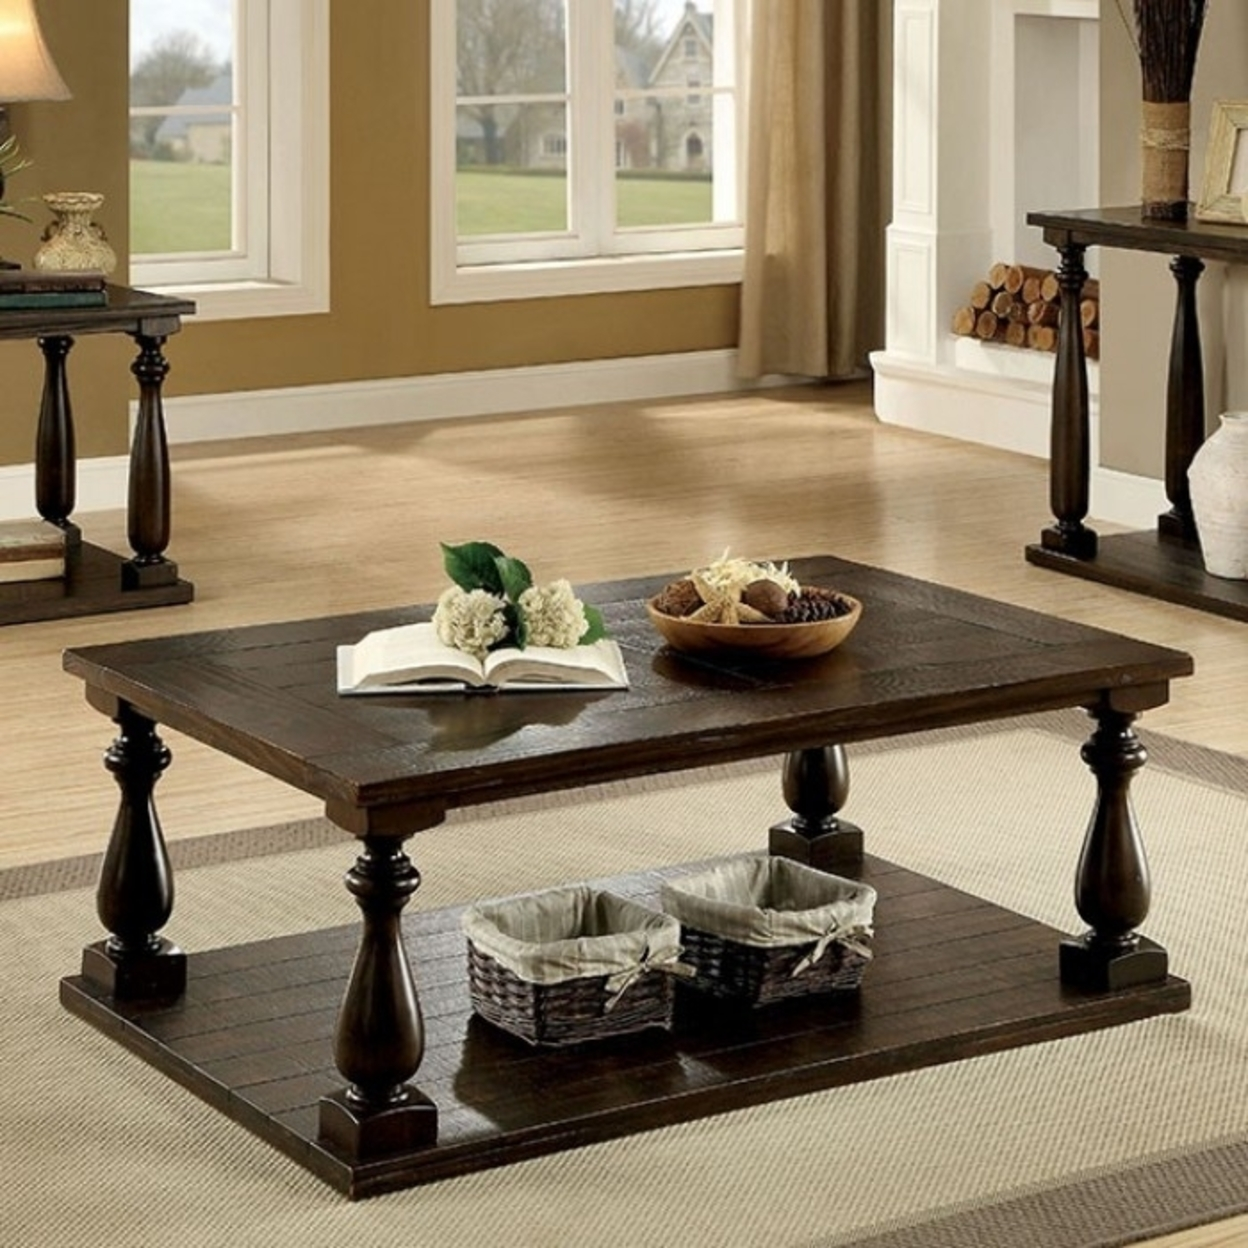 Wooden Coffee Table with Open bottom Shelf, Dark Walnut Brown 5a7ad20ee22461453f640c88